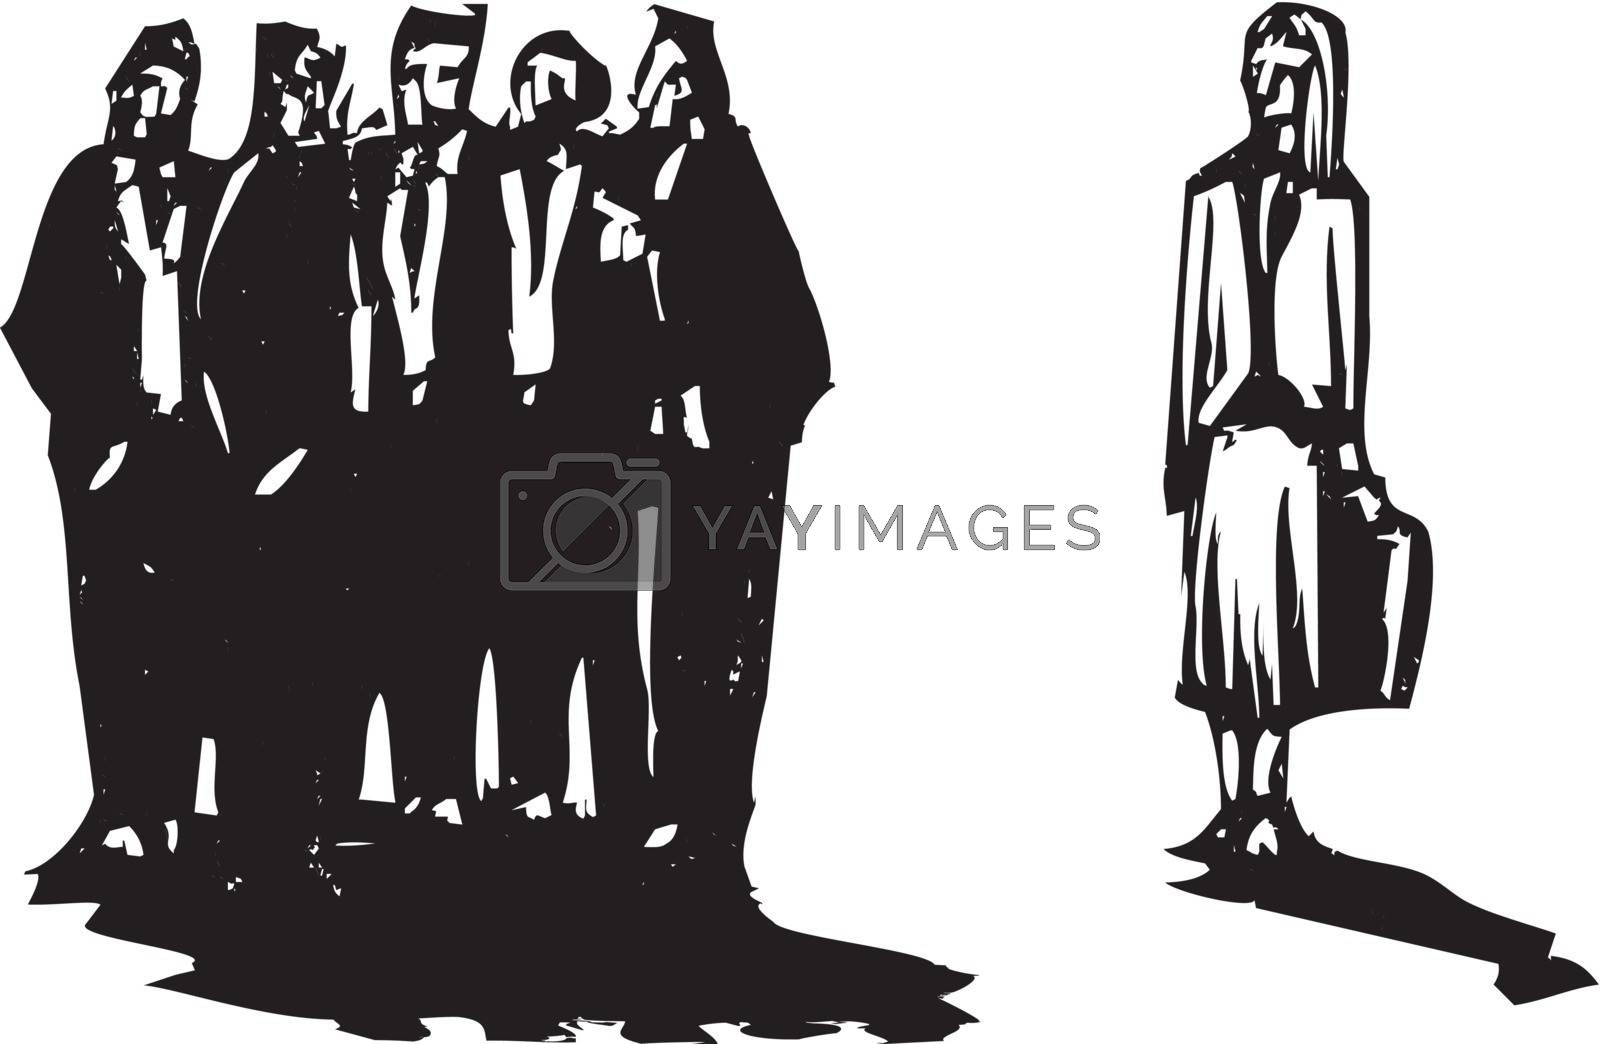 Crowd of men in business suits excluding a woman with briefcase.